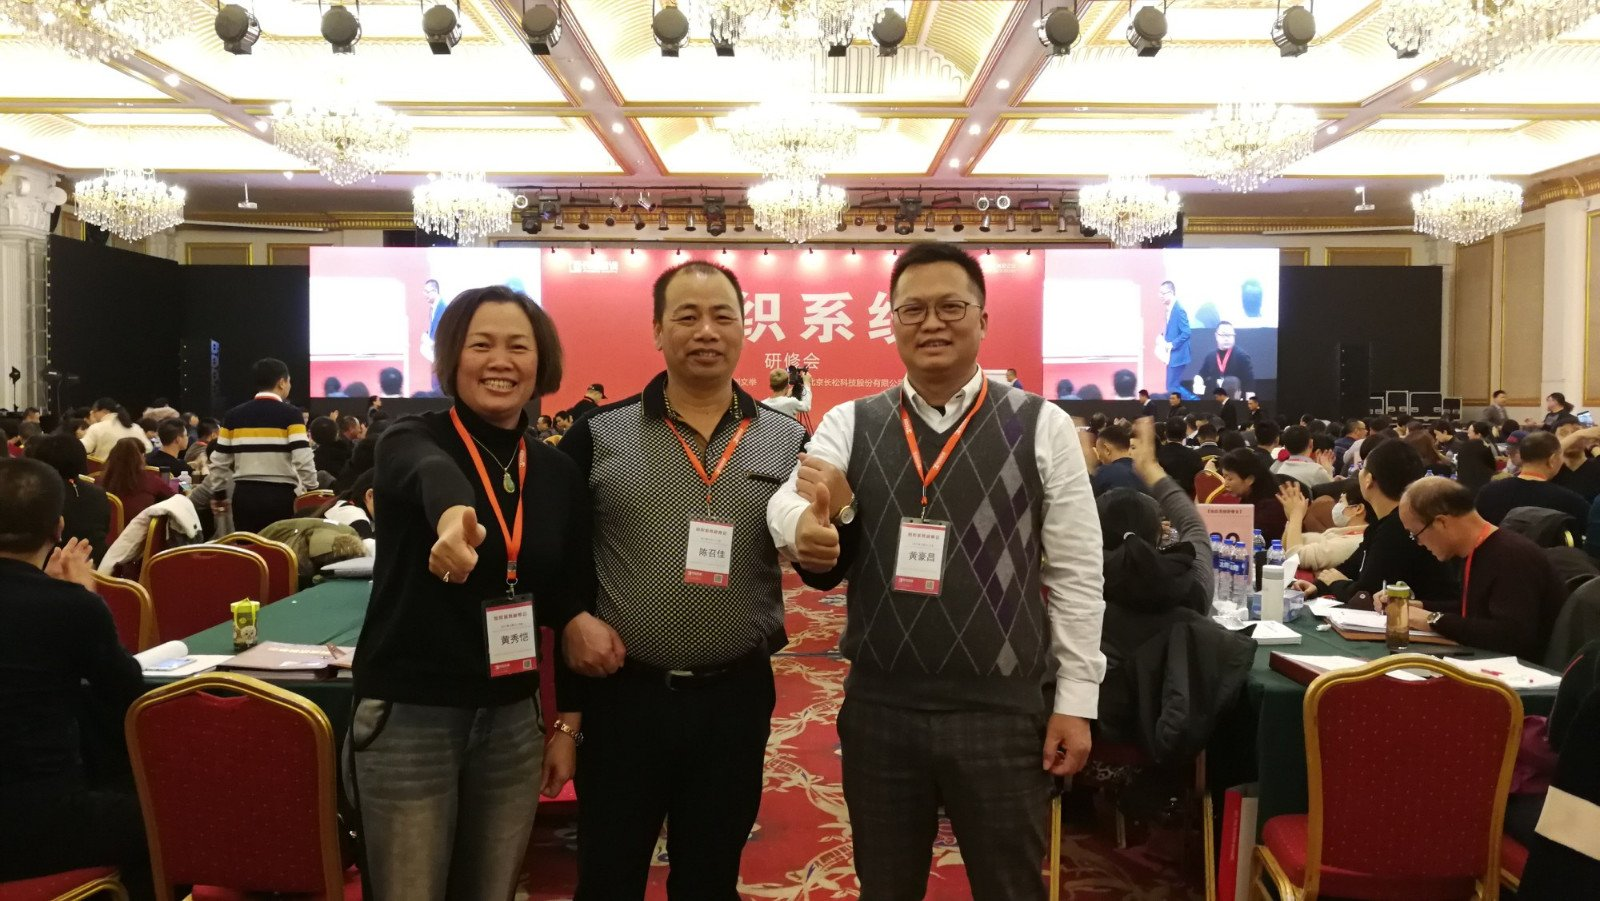 JLH-News | Jinlongheng participated in the organizational system seminar, from strategy to implement